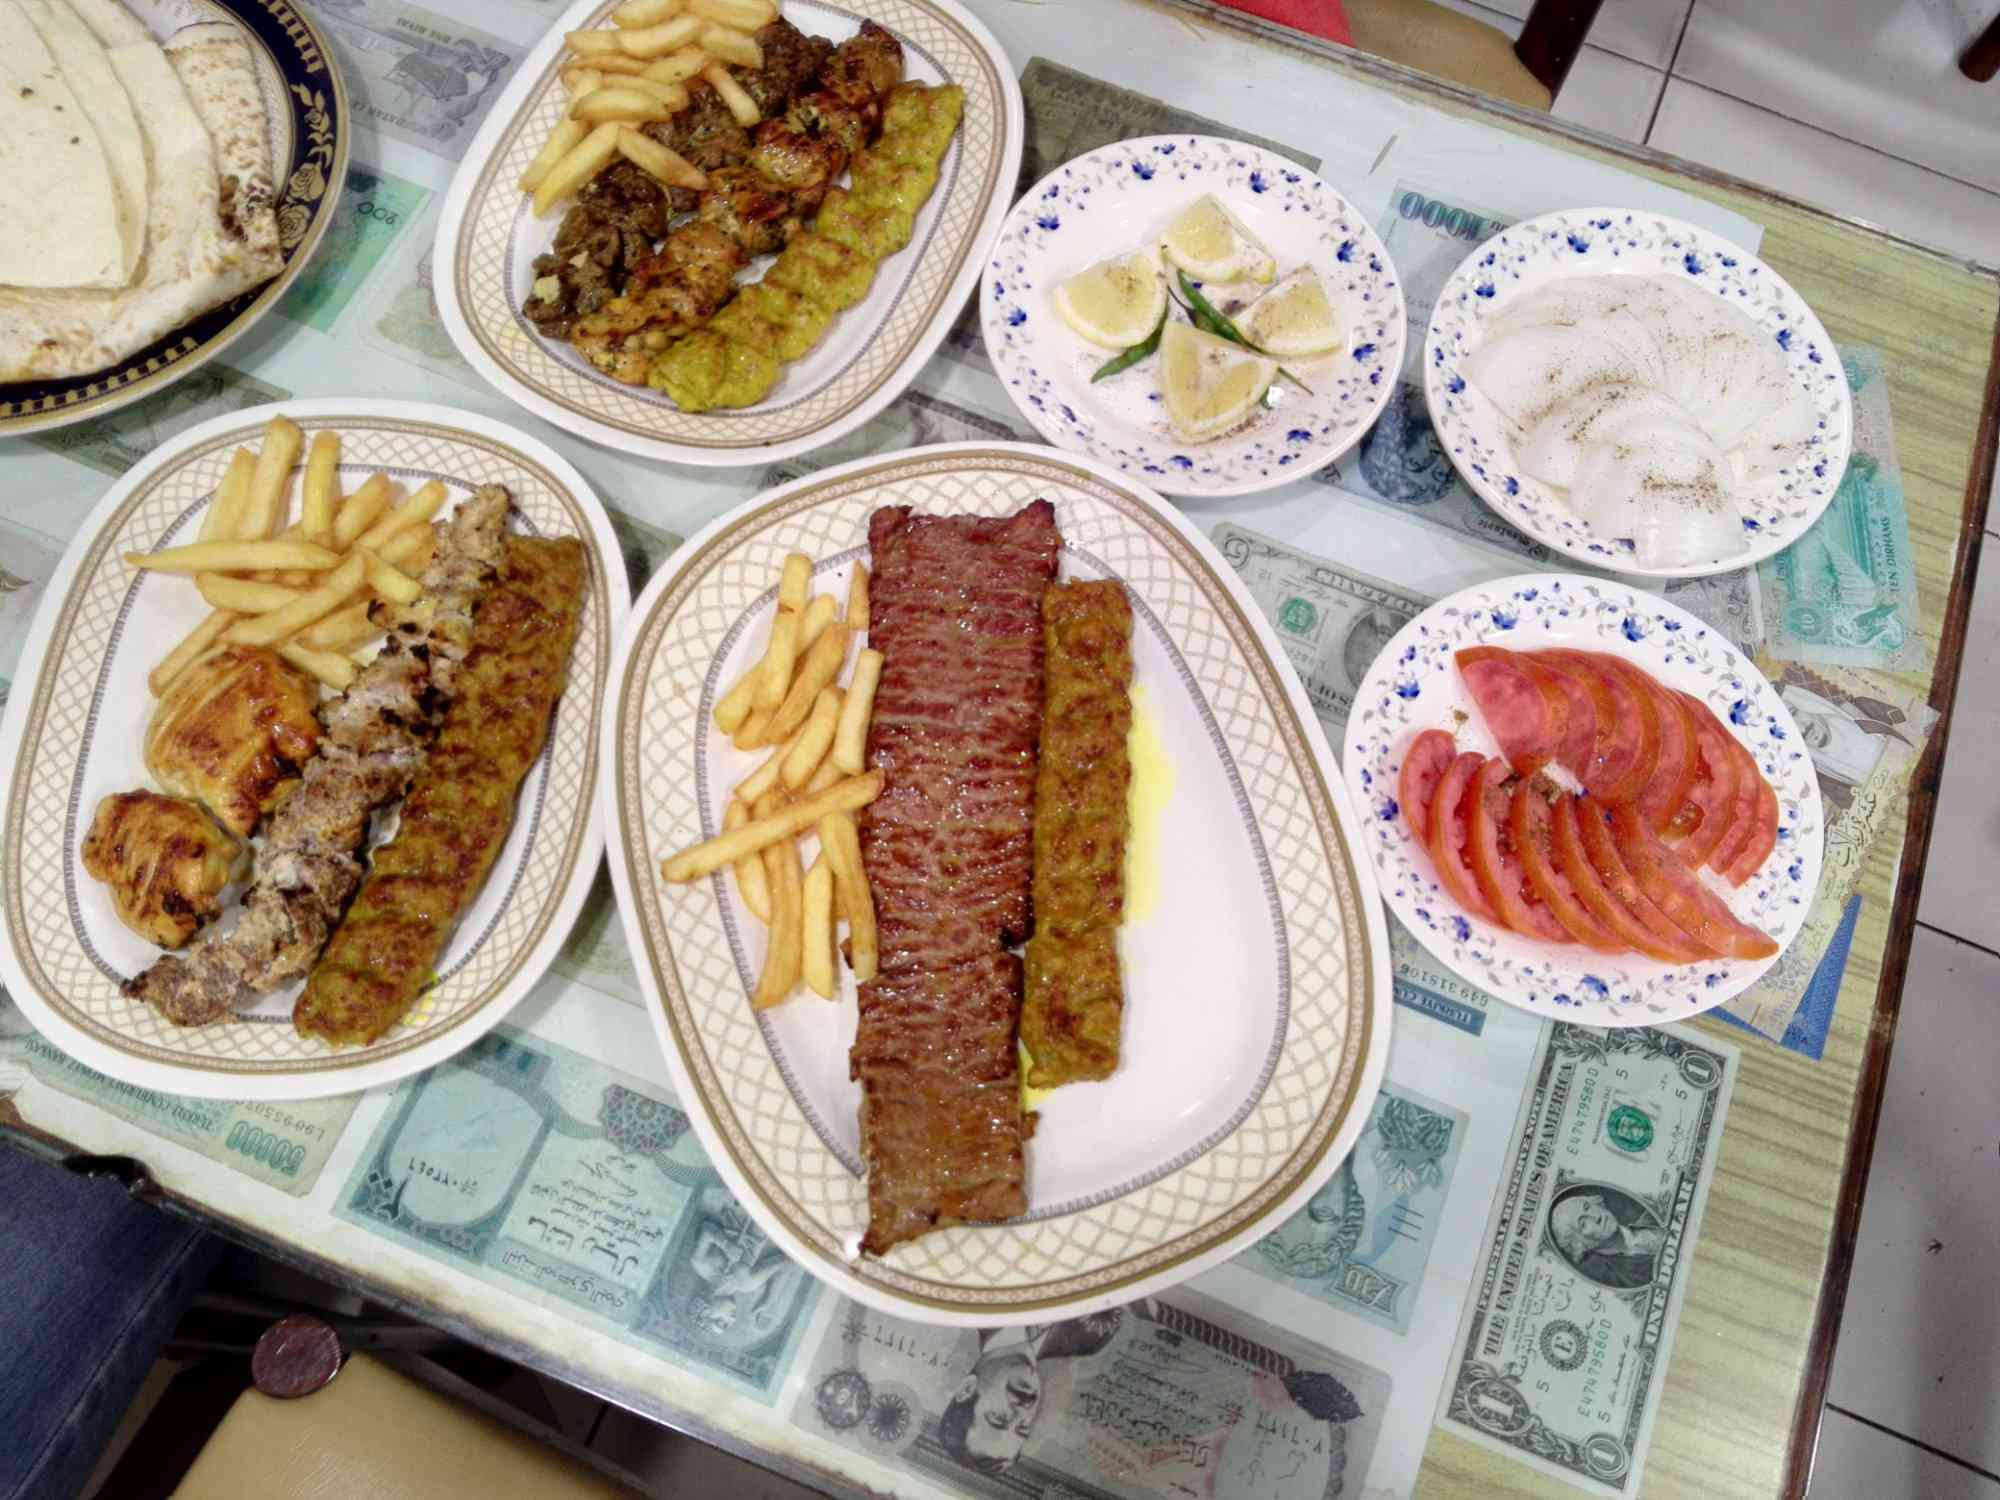 plates of various grilled meats served with french fries on a table with sliced tomateos, slice onions, and lemon wedges. The table has various currencies on it, sealed under a protective layer